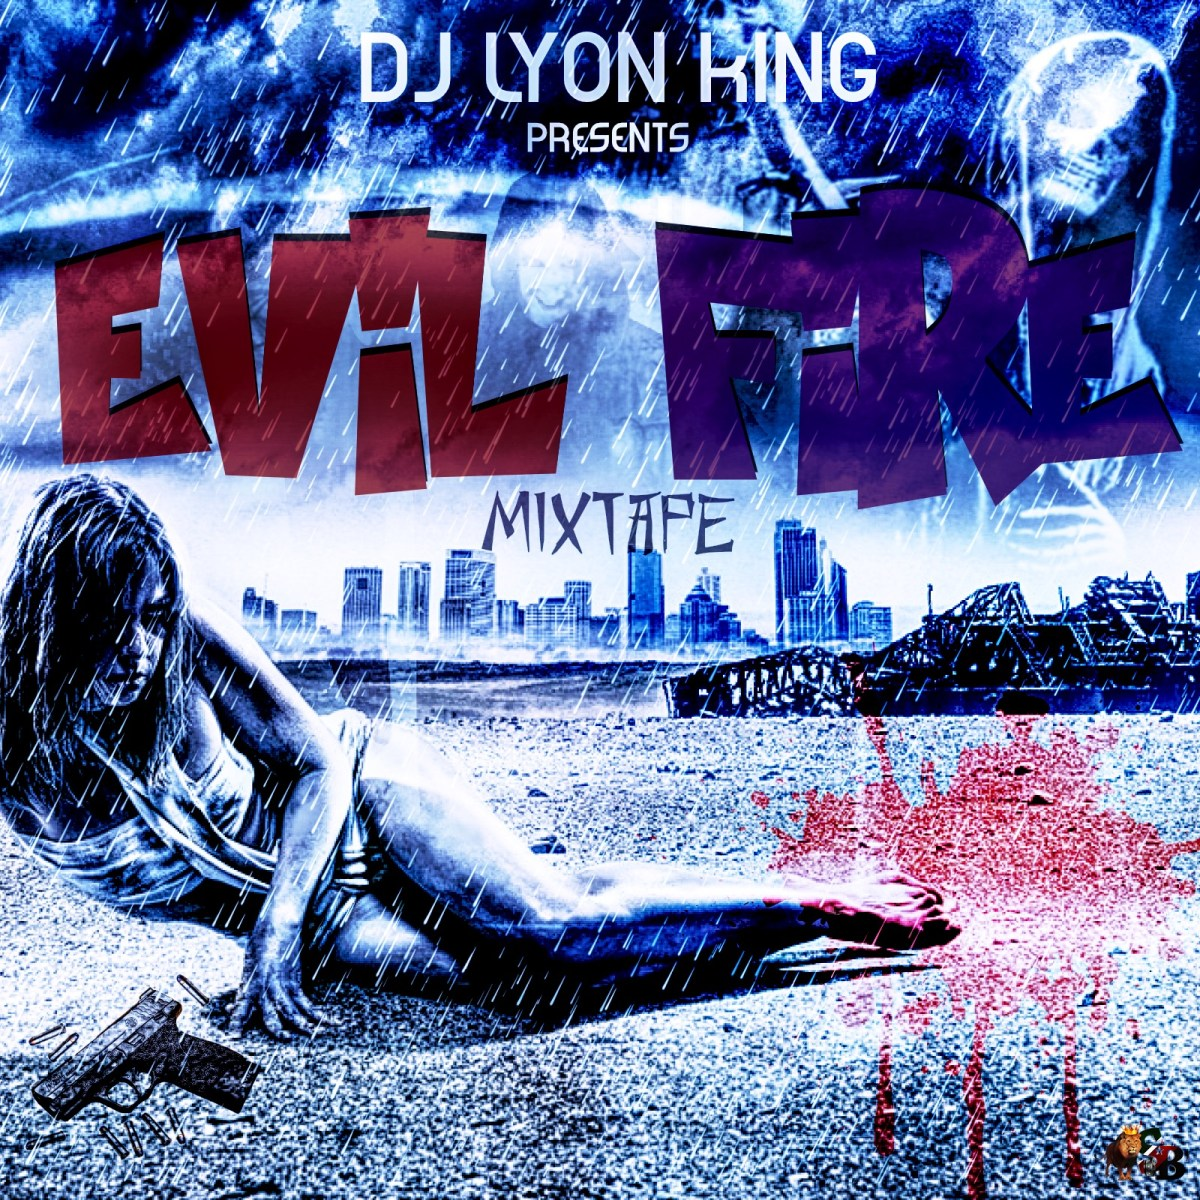 DJ LYON KING - EVIL FIRE - MIXTAPE 2017